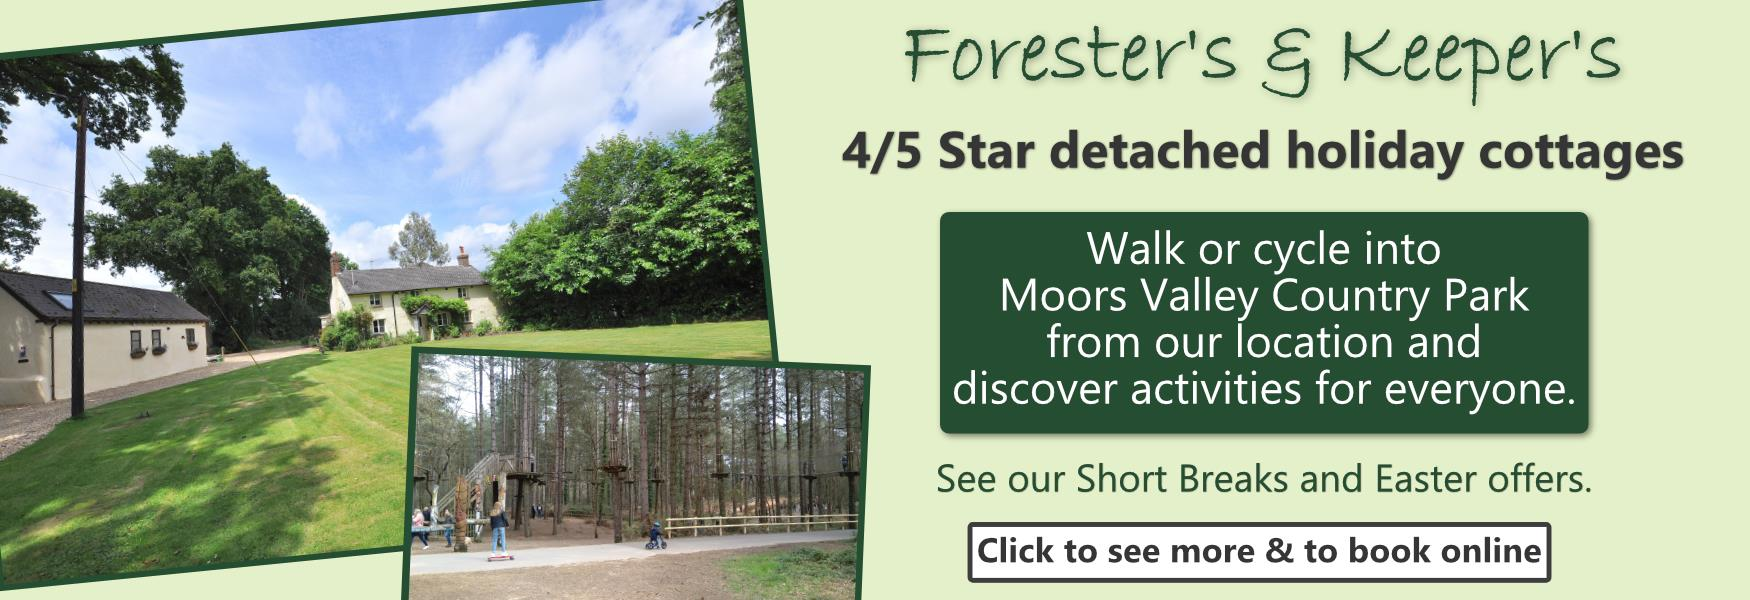 Best New Forest Cottages Lodges Self Catering Apartments